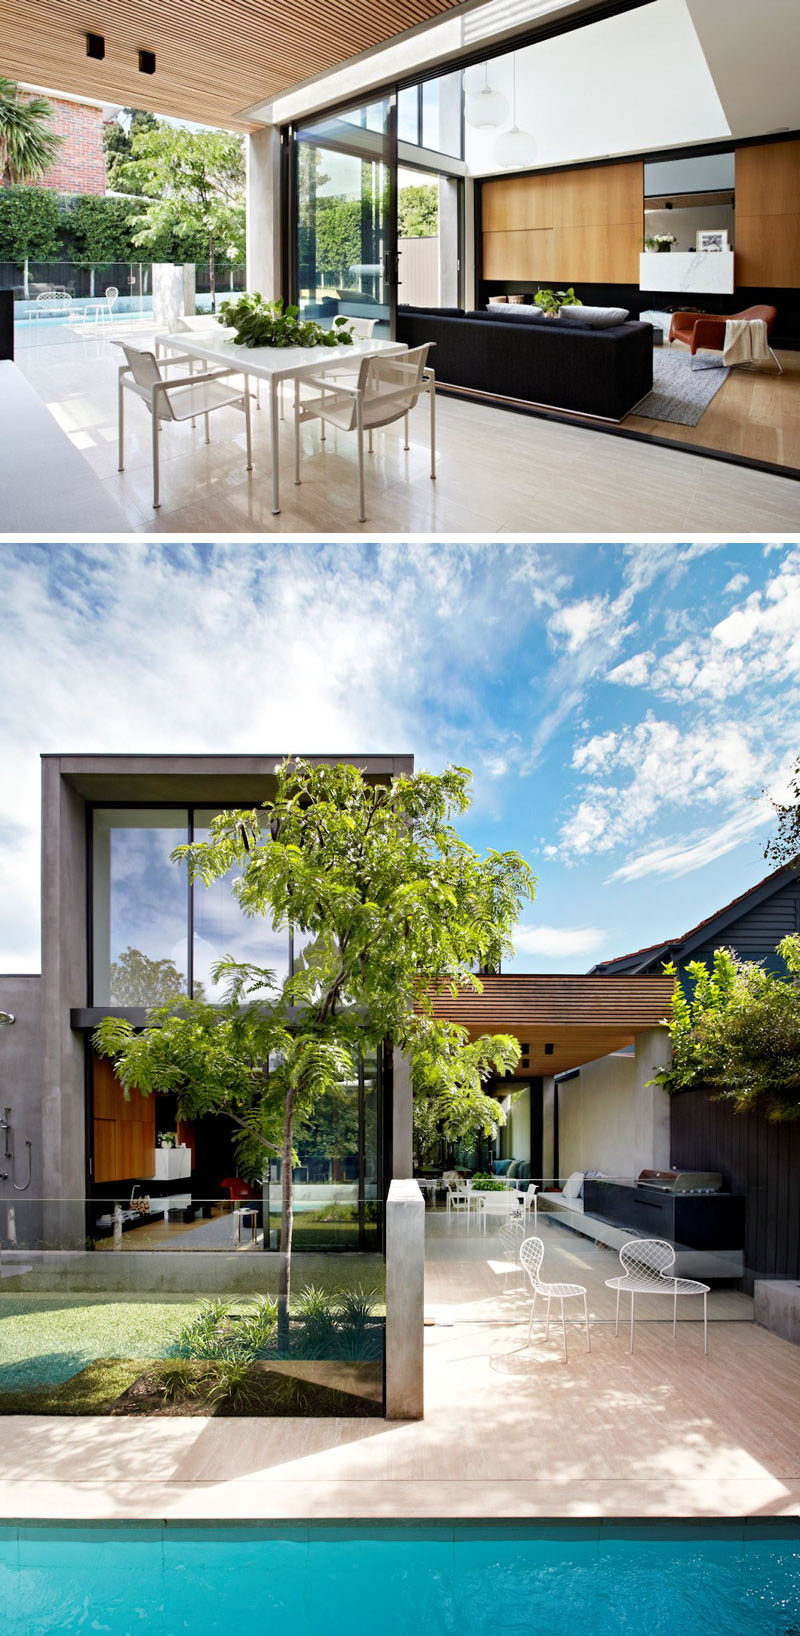 Outdoor living design with bbq area from a real australian home - 23 Awesome Australian Homes That Perfect Indoor Outdoor Living The Living Room Of